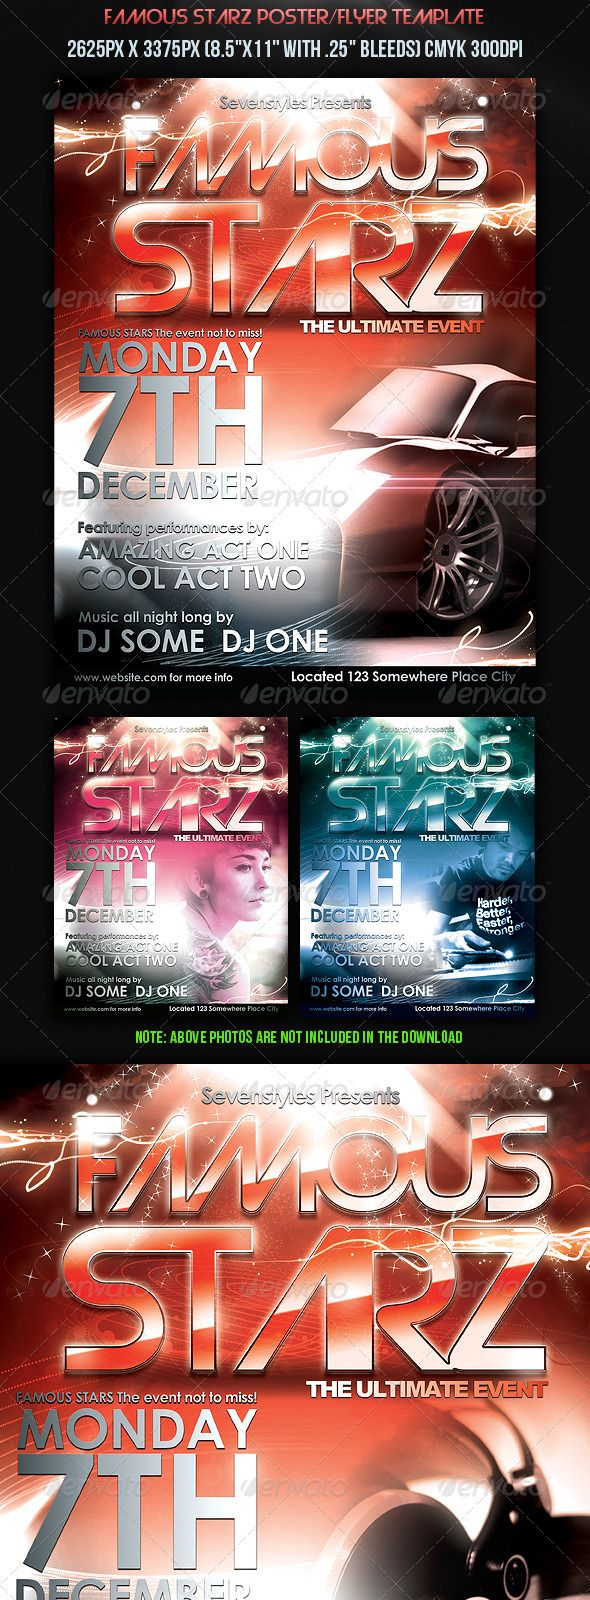 8 5x11 poster design - Famous Starz Flyer Poster Template